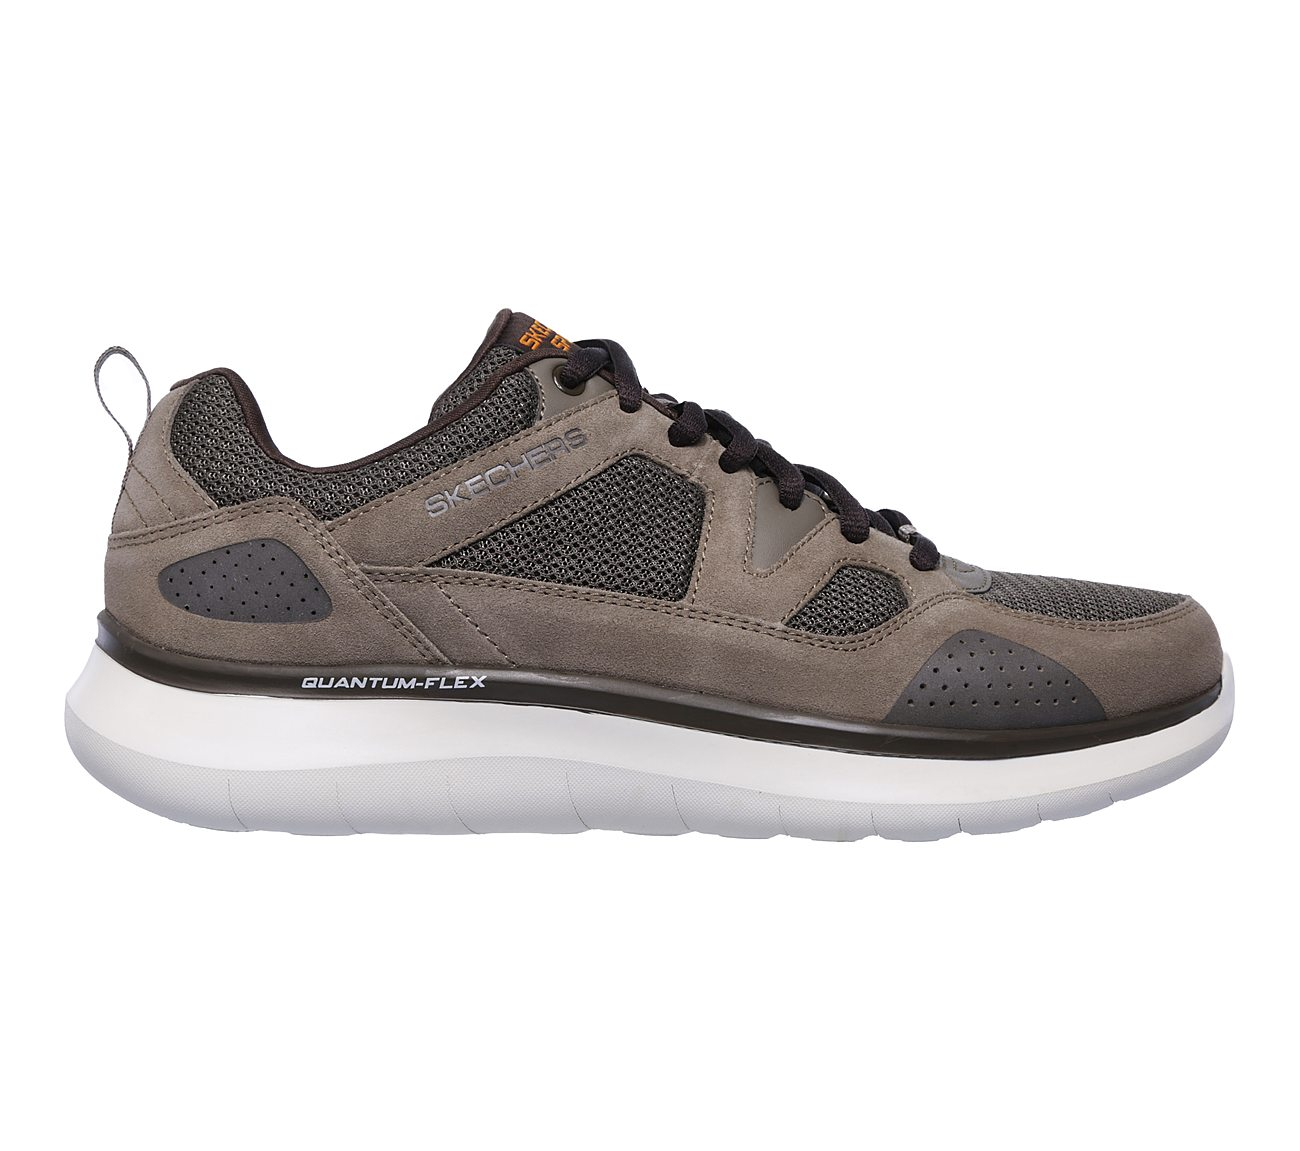 QUANTUM FLEX COUNTRY WALKER Mens Relaxed Fit Trainers Brown